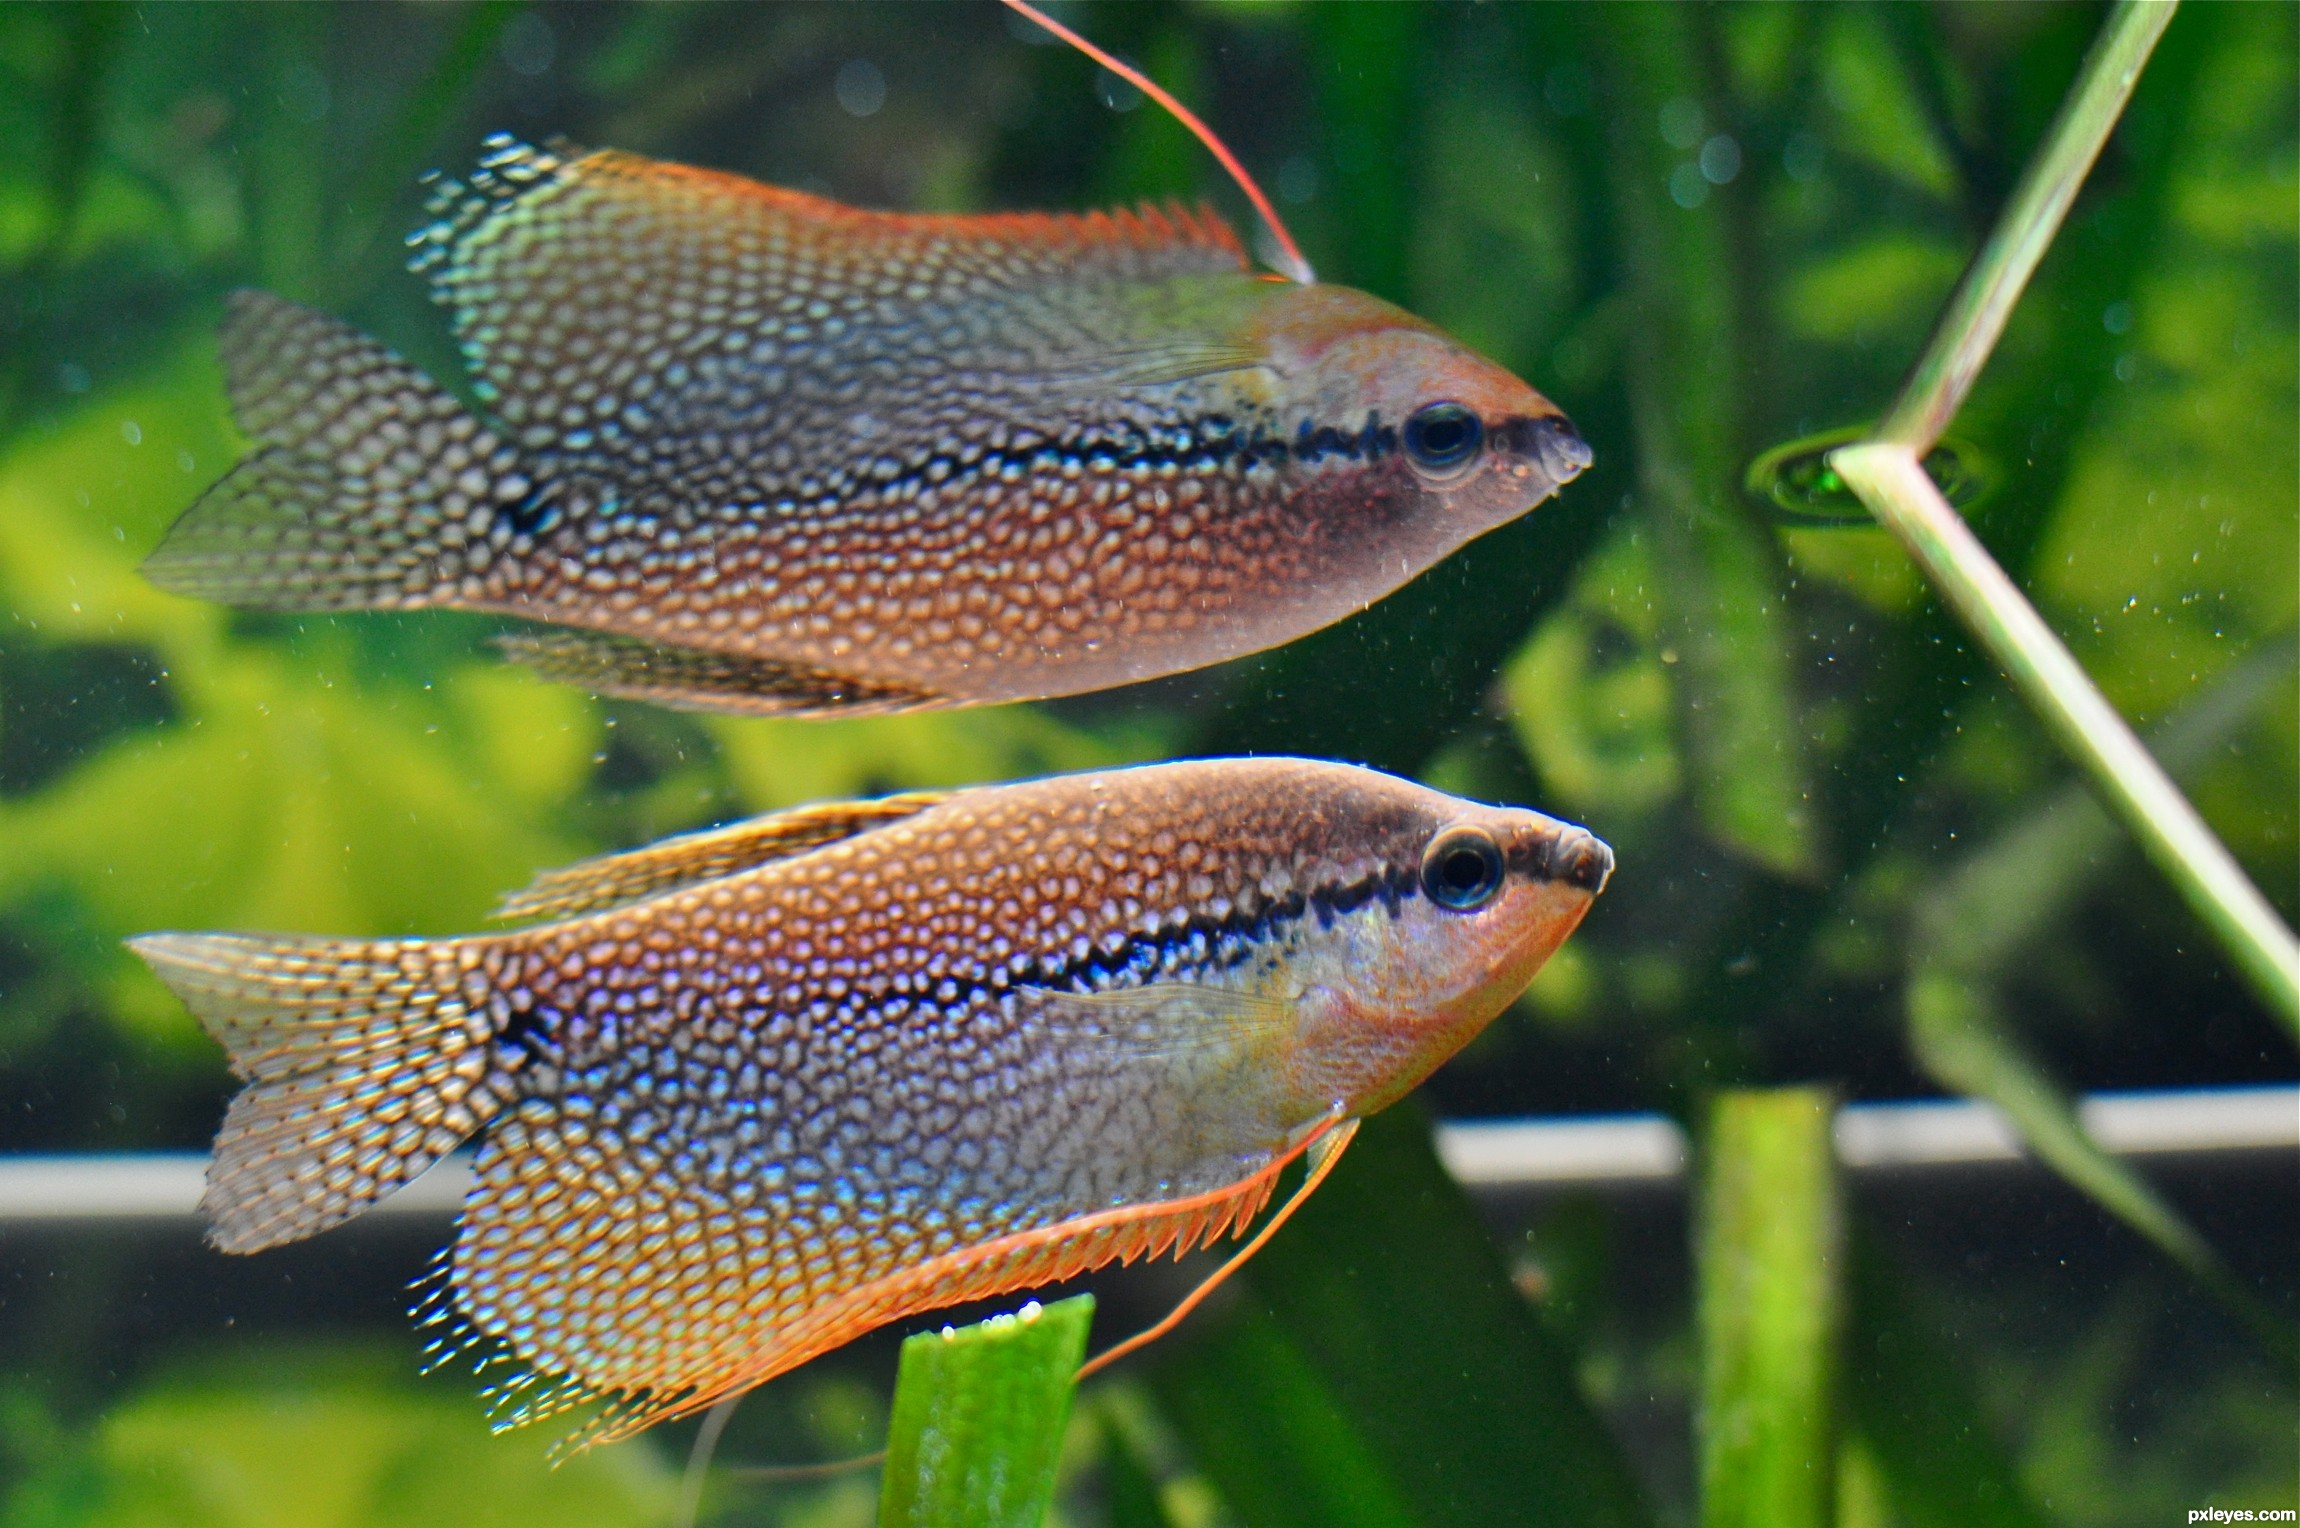 Pearl Gourami picture, by Titome58 for: everything fish 2 photography ...